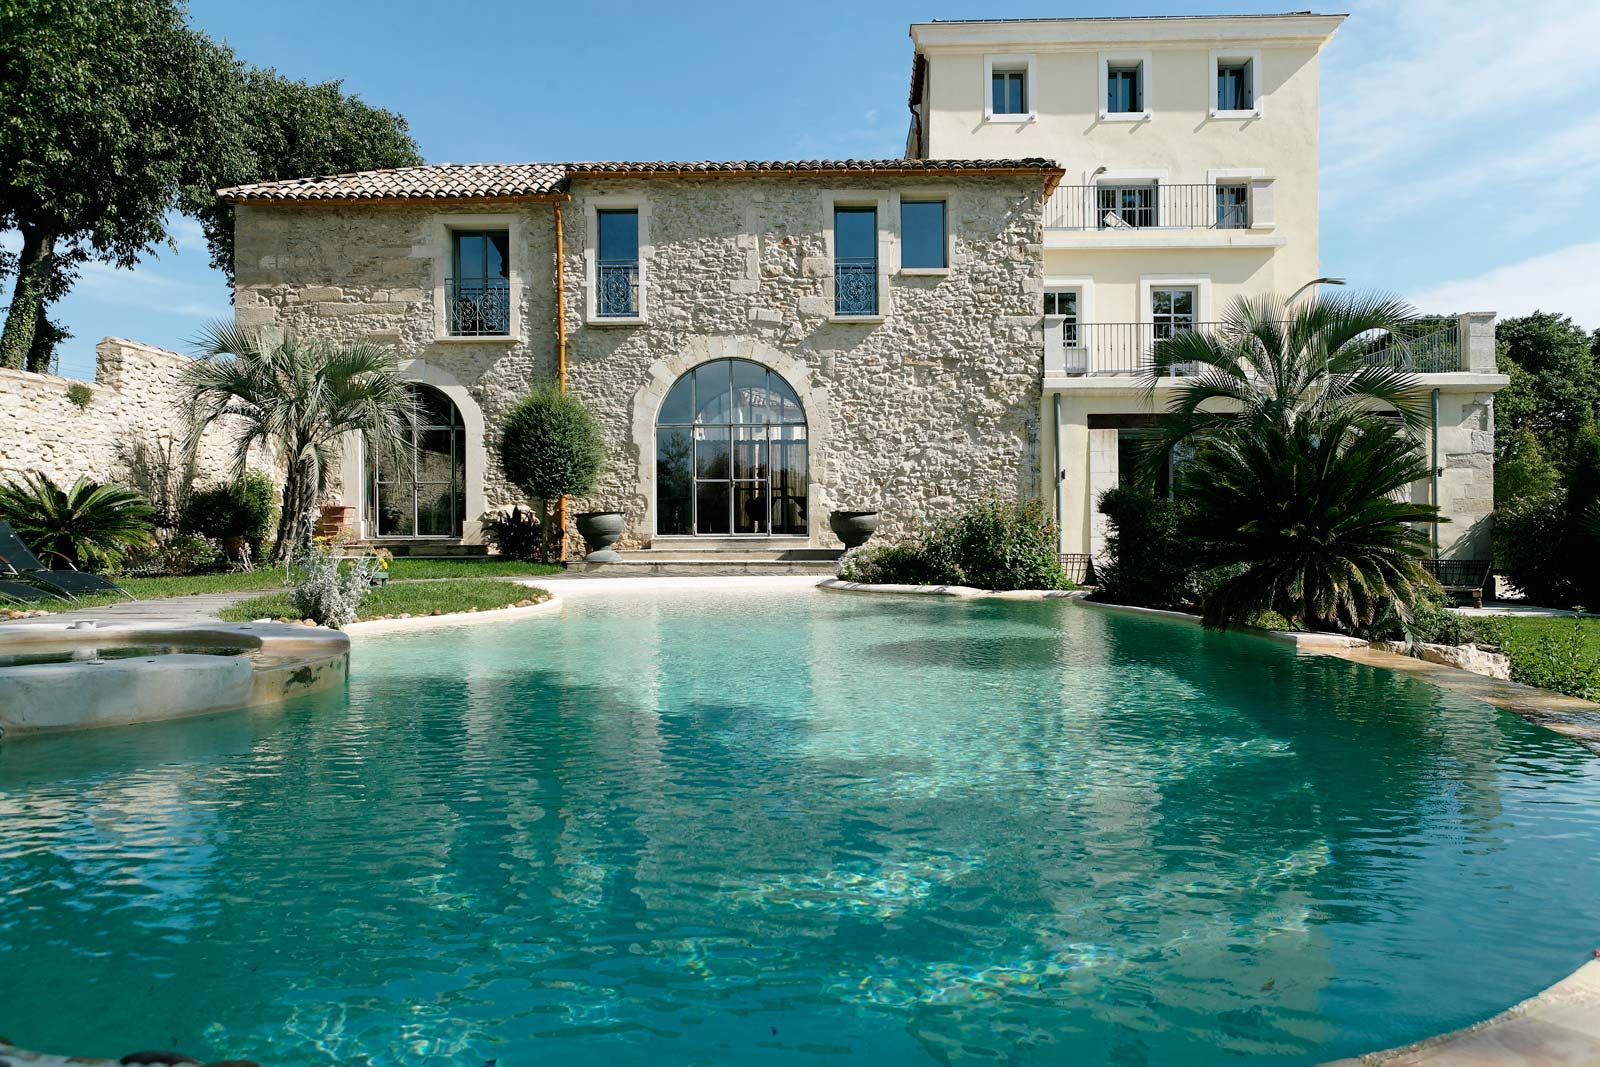 Gina Baksa Reviews the Luxurious La Domaine de Verchant Hotel & Spa 4